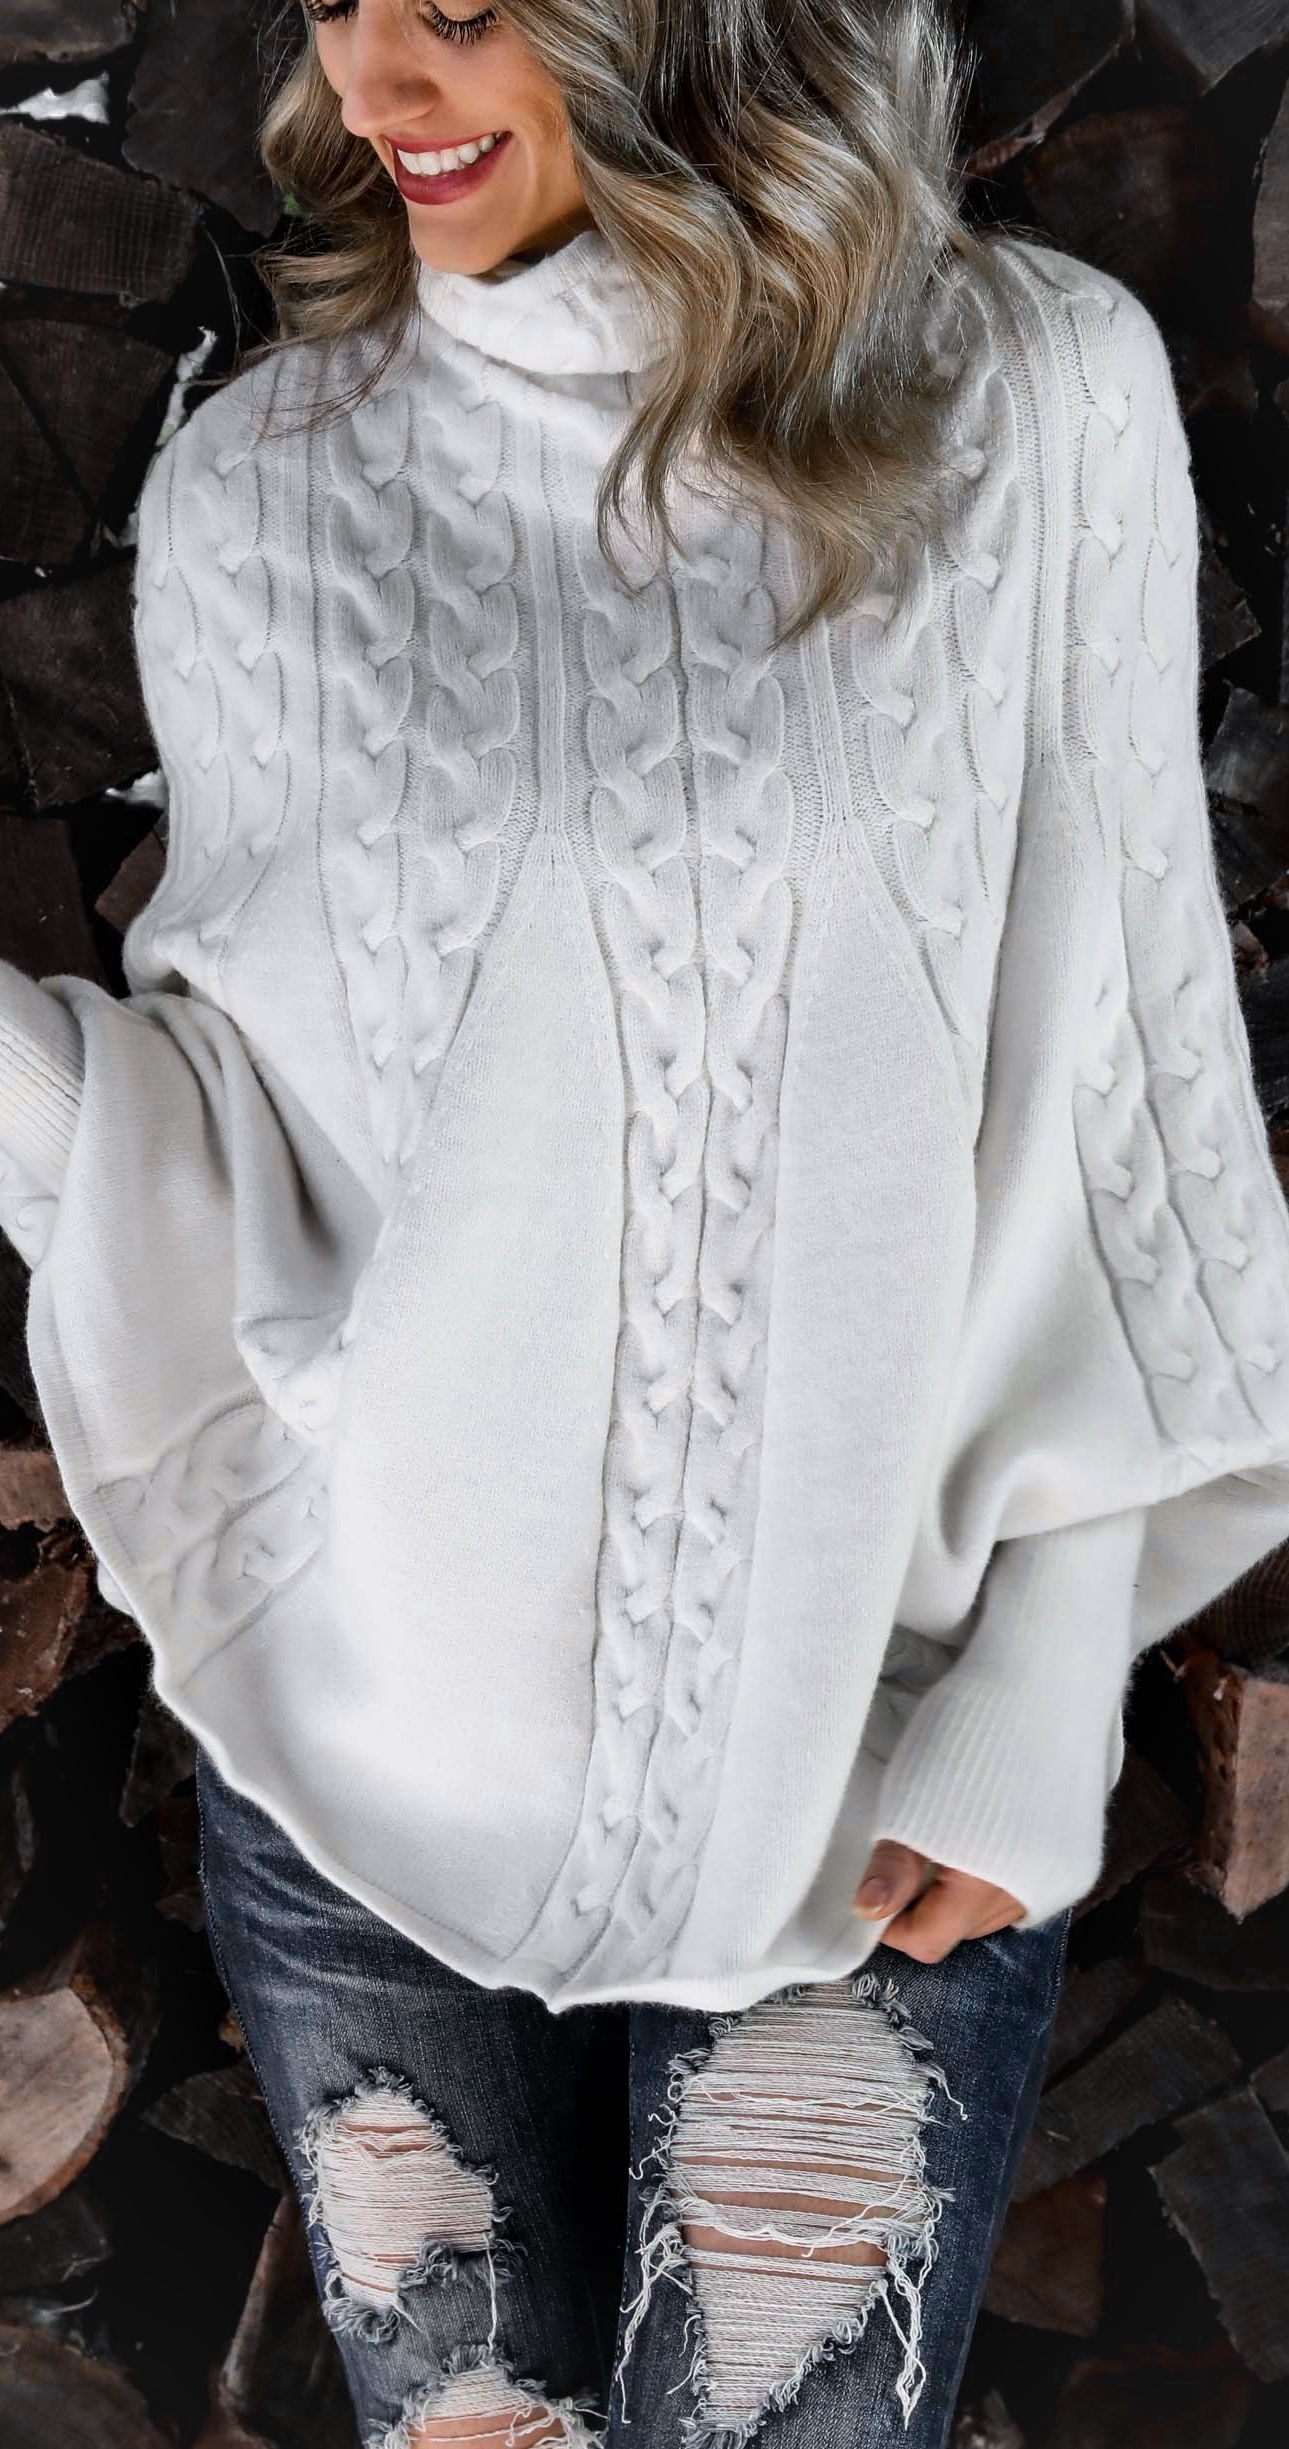 07a0b95189d75e Ivory Cable Knit Sweater by Seasalt & Honey | Fashion and stuff ...